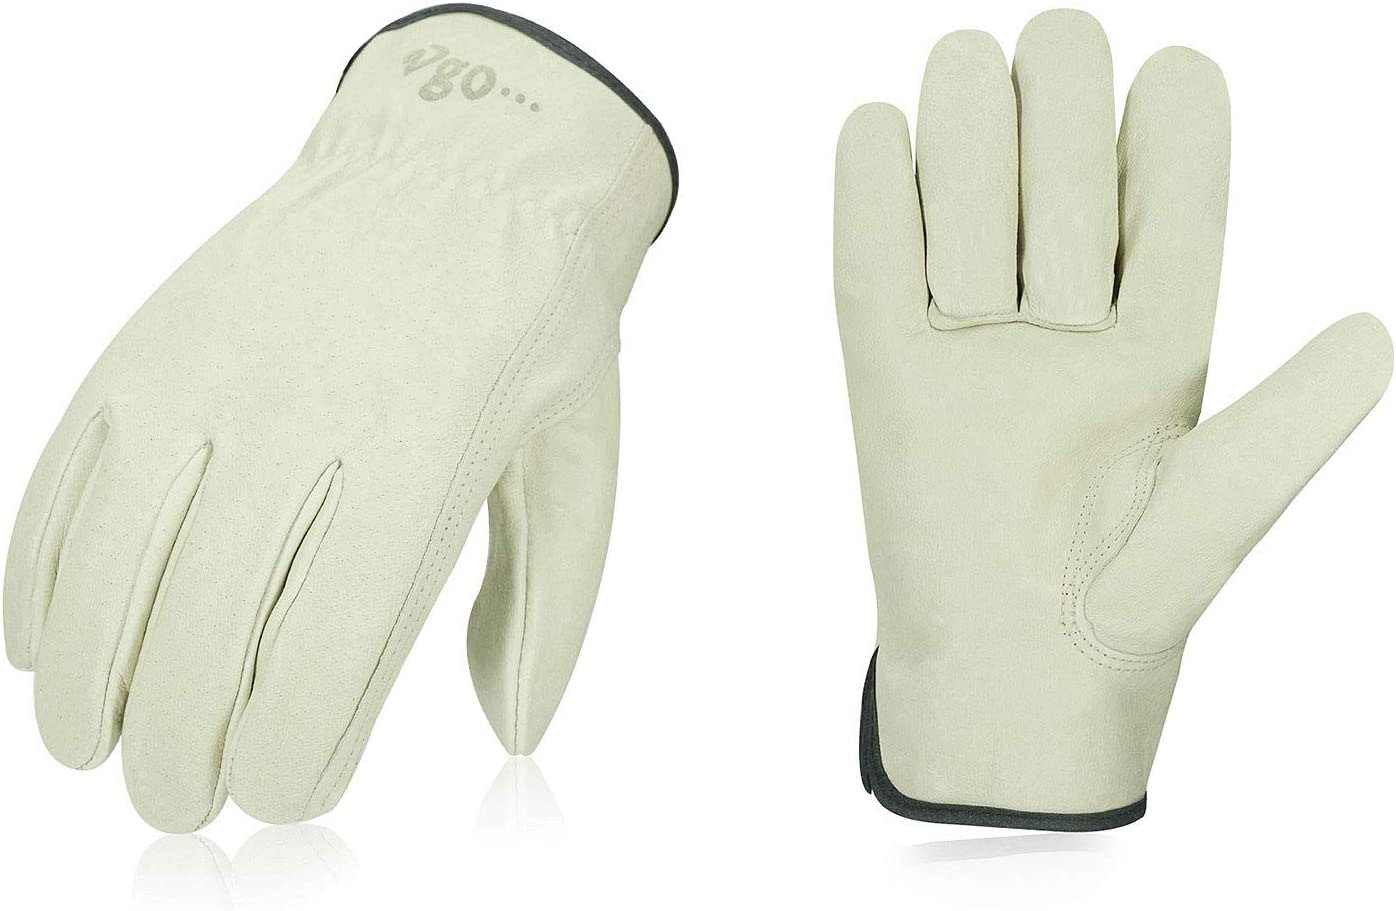 Vgo 3-Pairs Unlined Men's Pigskin Leather Work Gloves, Drivers Gloves (Size XL, Light Cyan, PA9501)